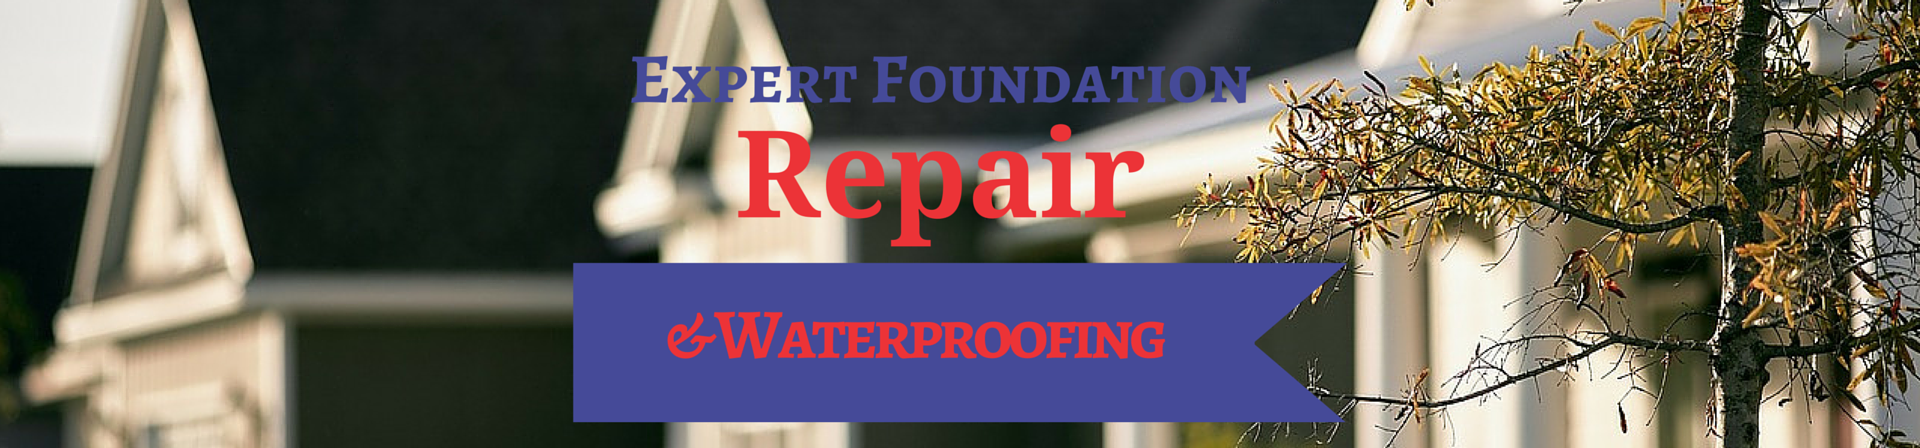 expert foundation repair and waterproofing